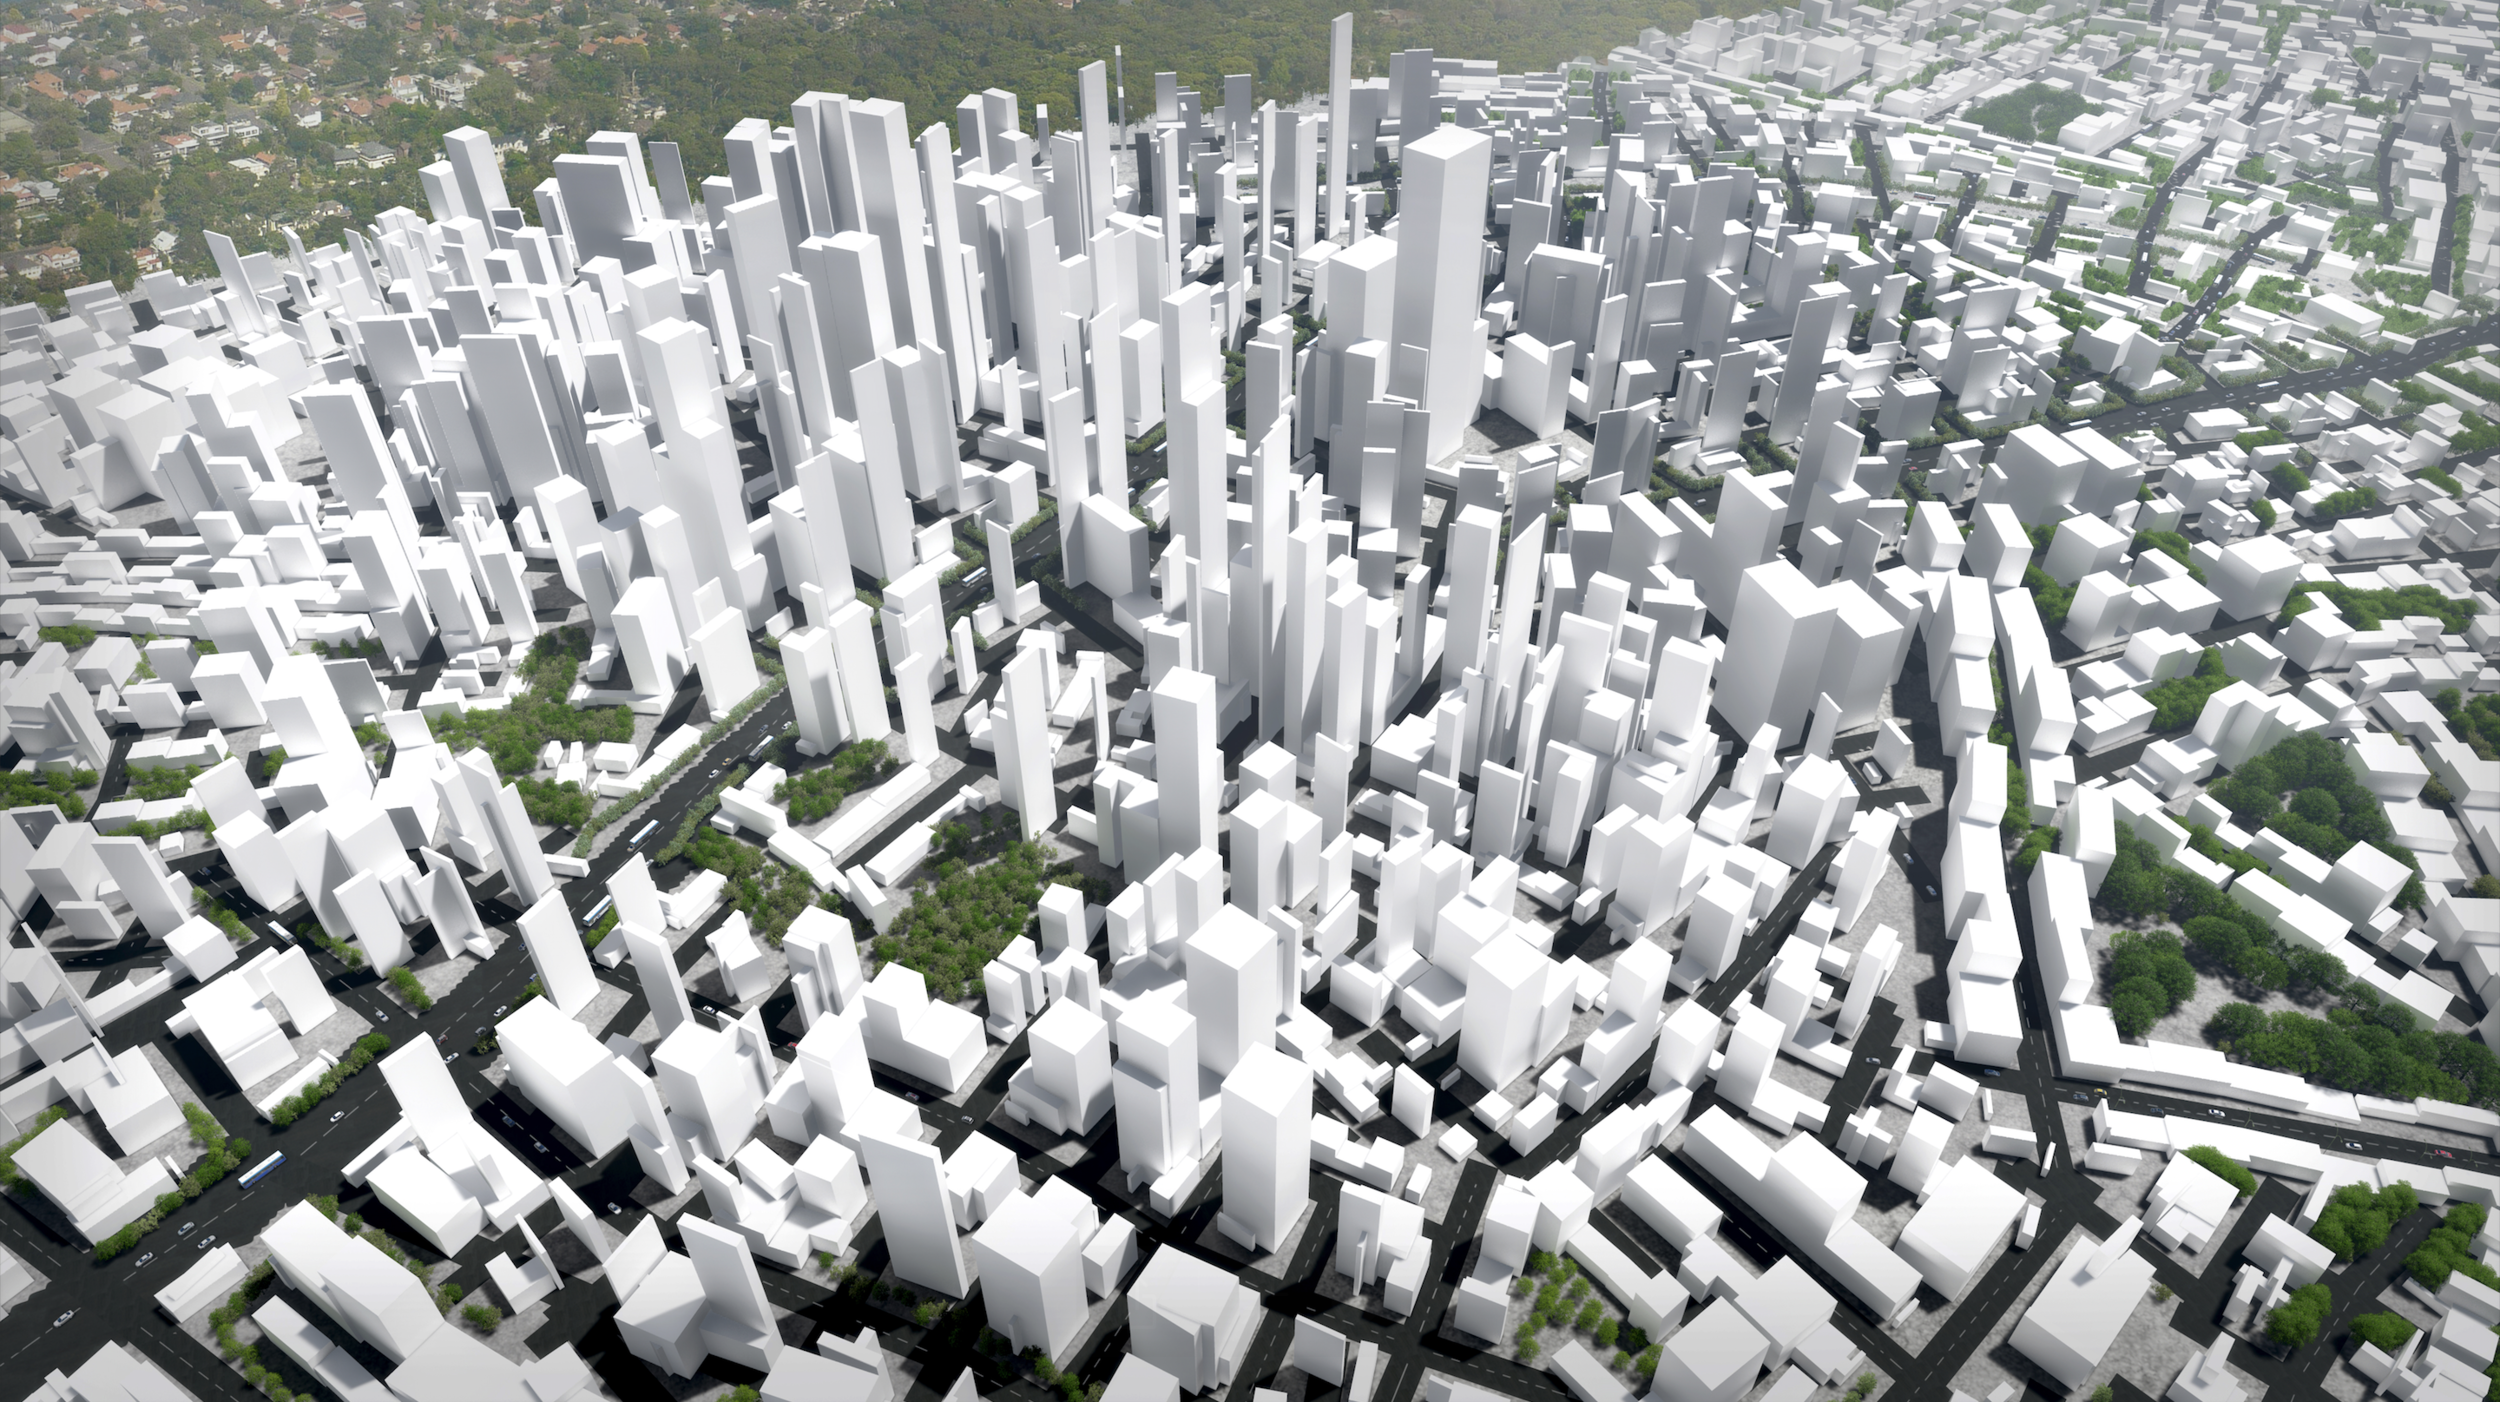 Computational Modelling of Cities: Co-evolution